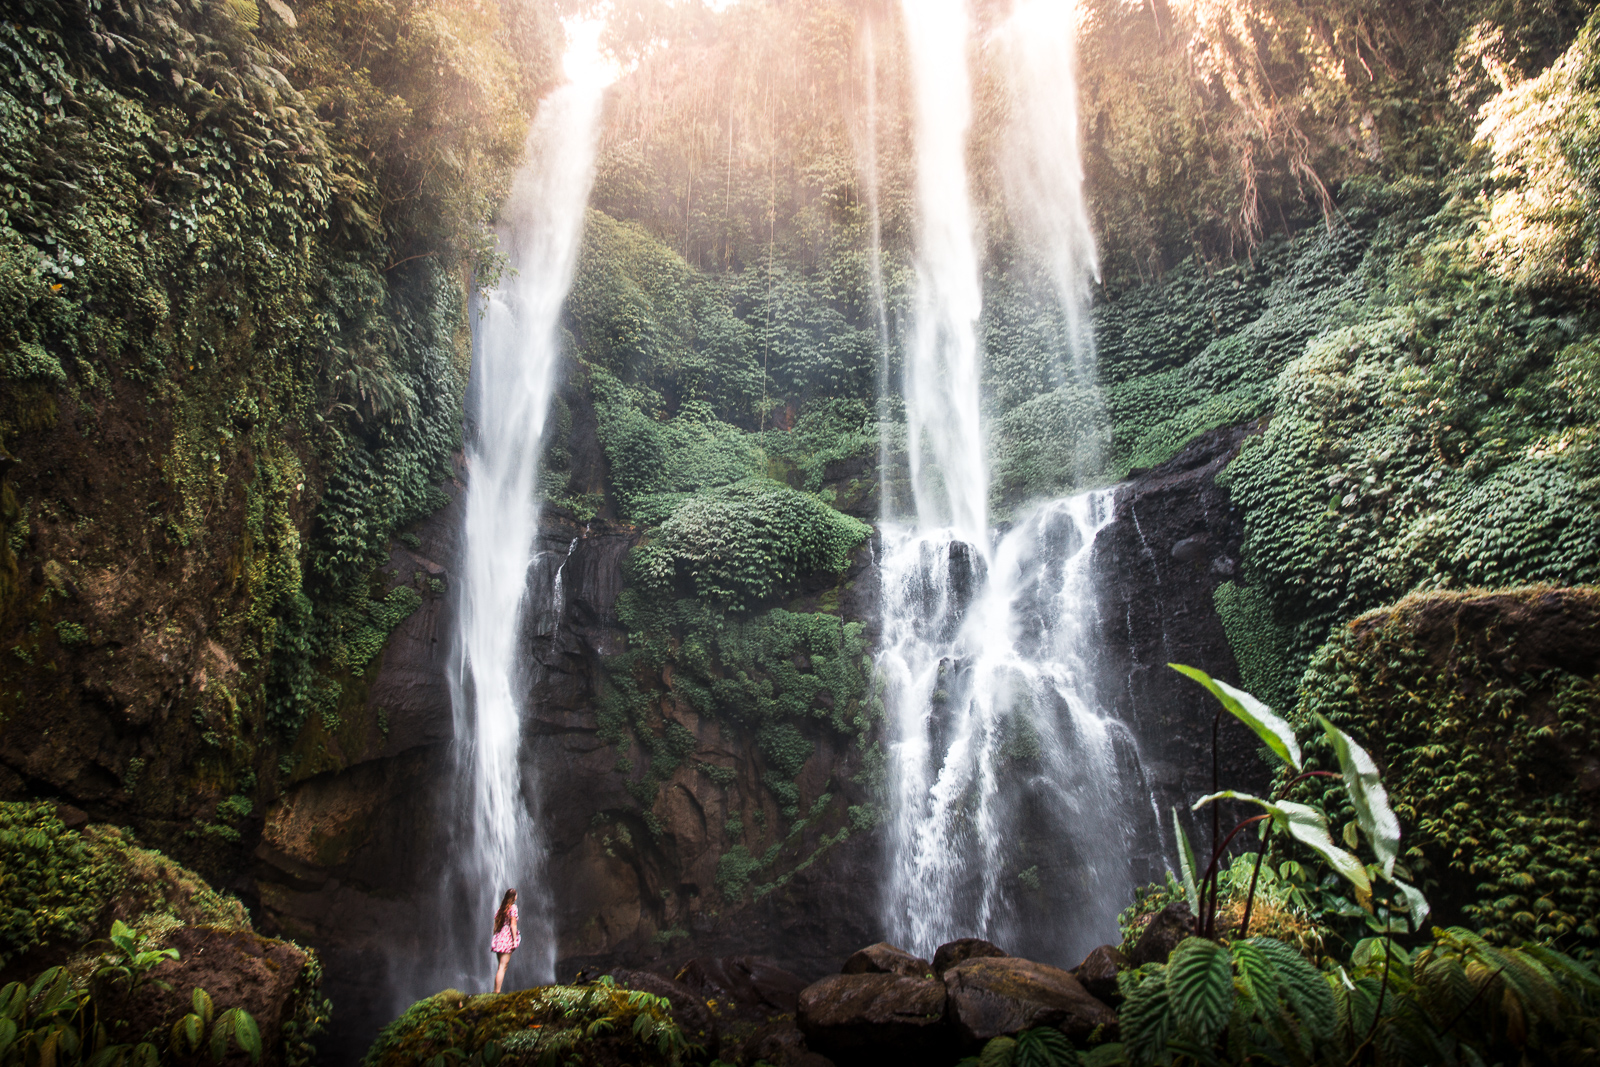 The Sekumpul Waterfall - Bali's Most Beautiful Waterfall | Omnivagant